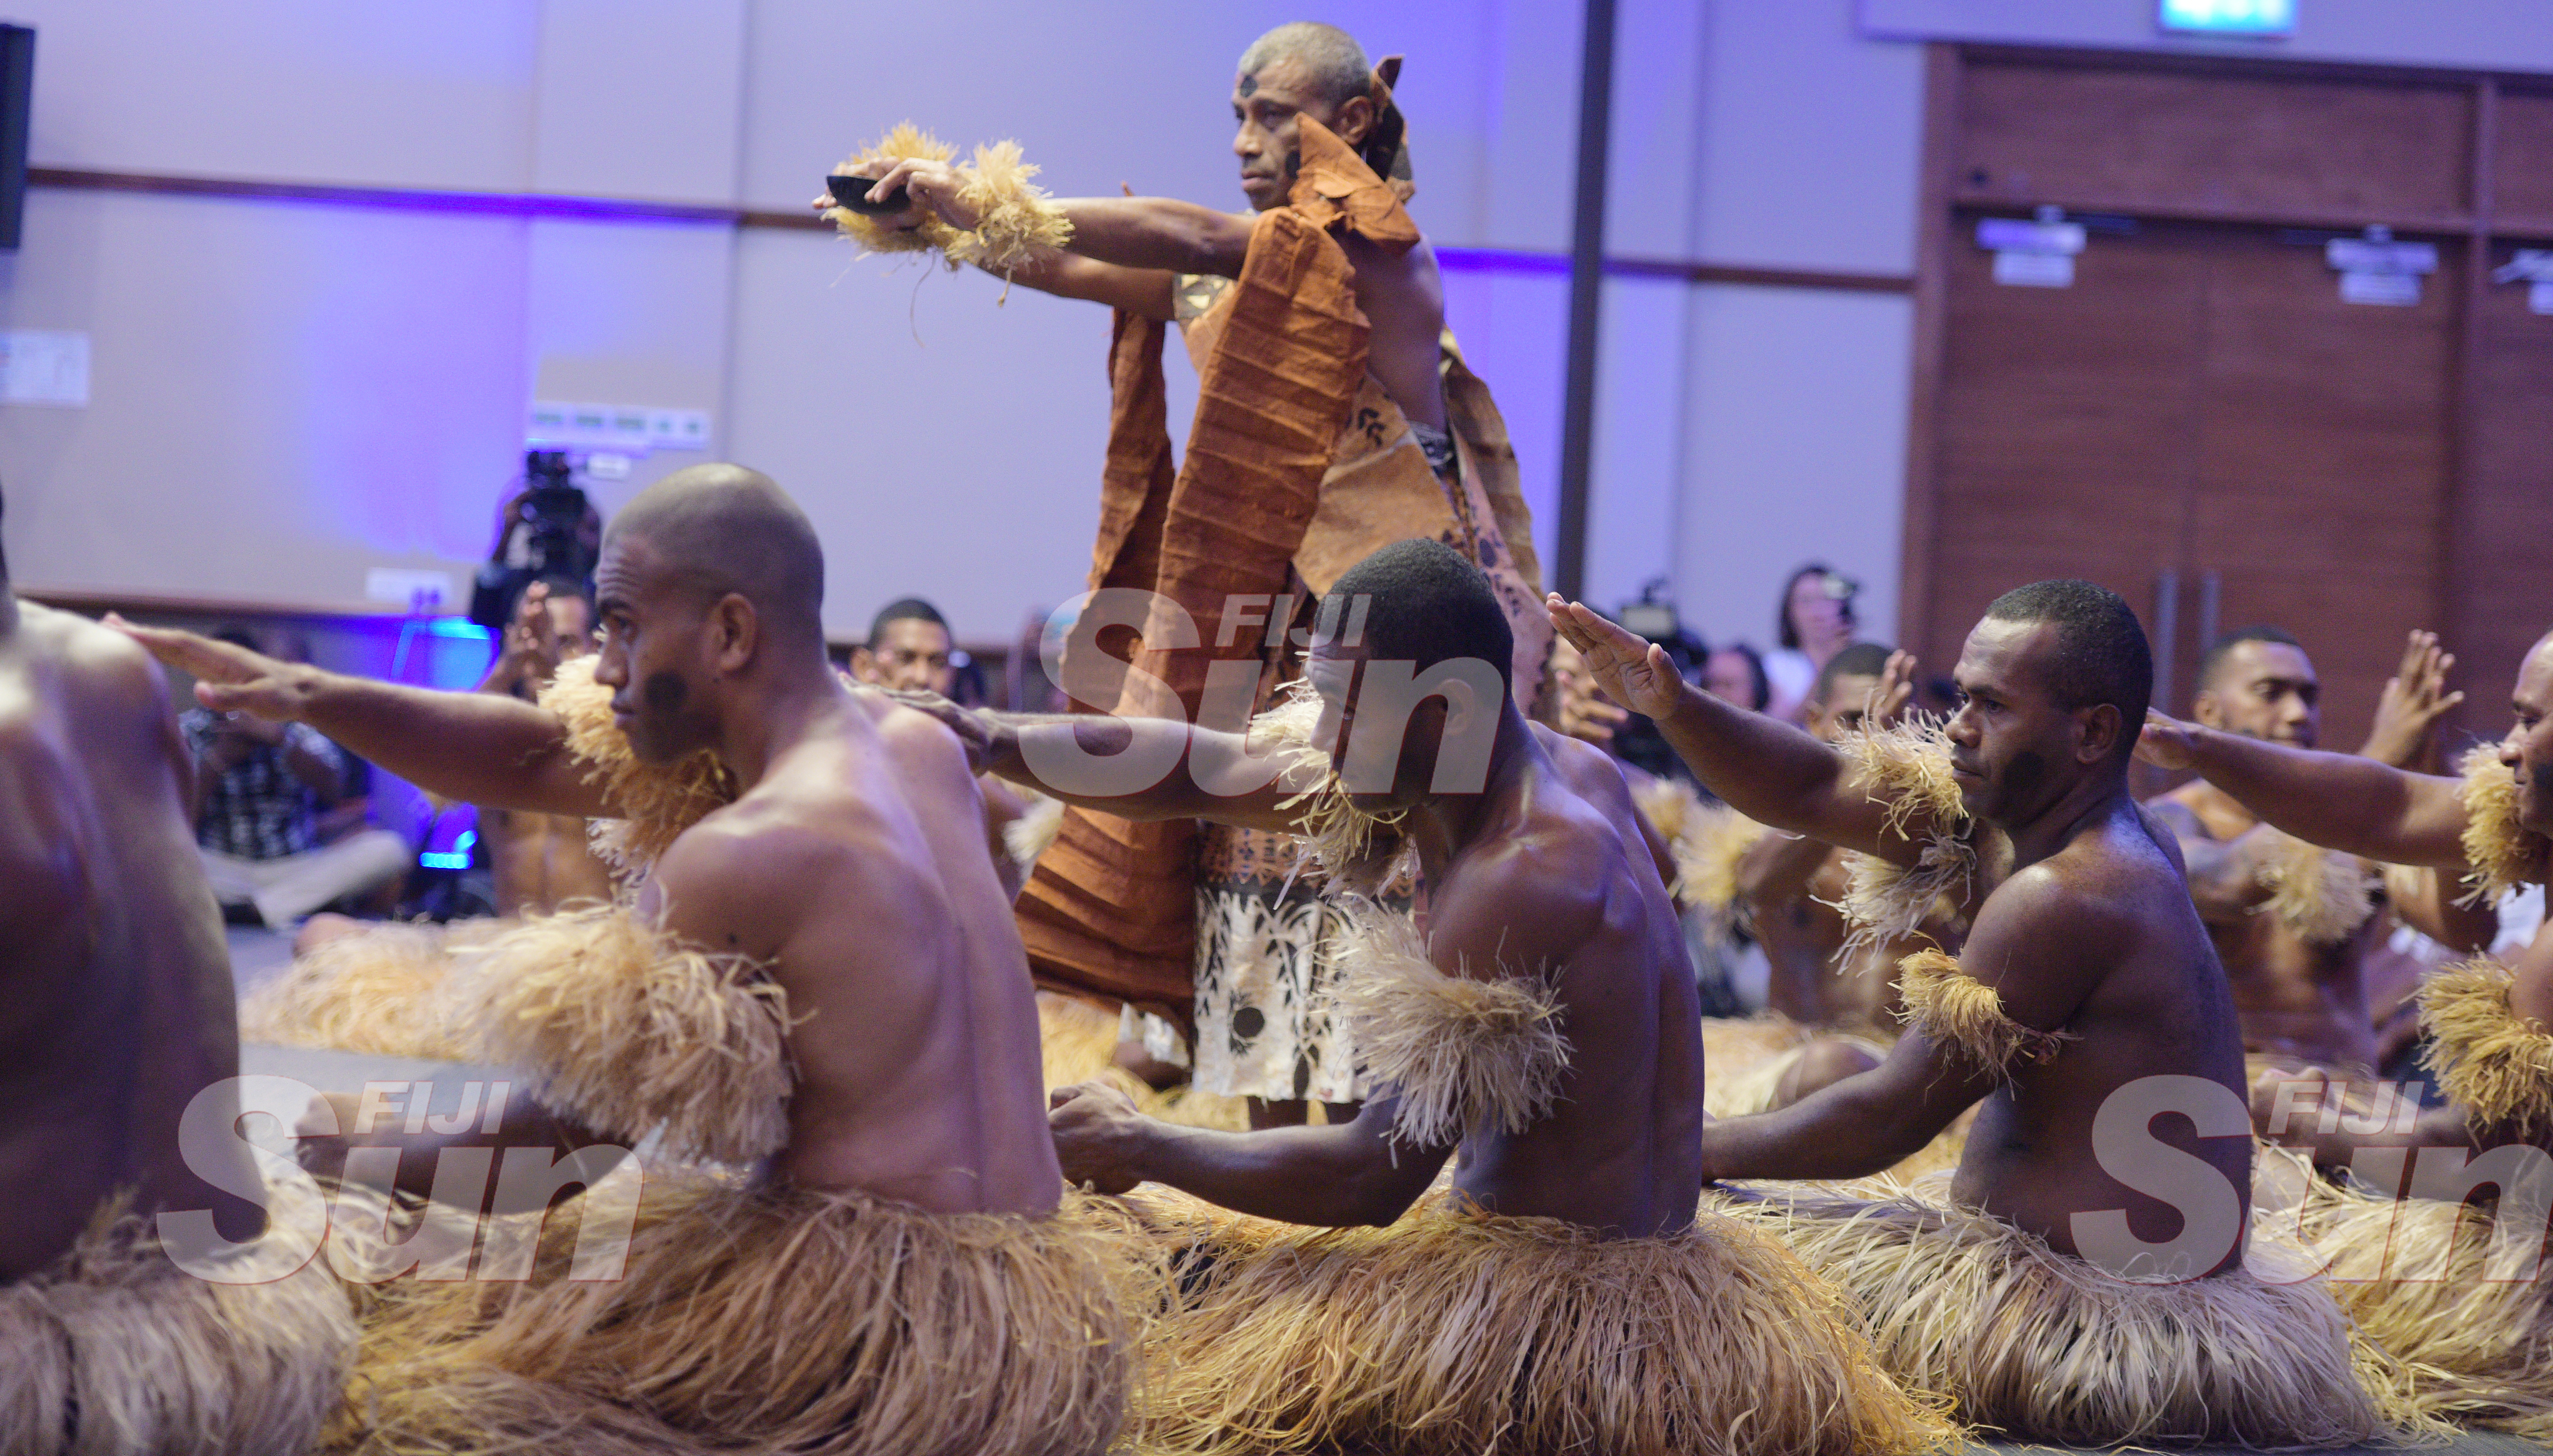 Members of RFMF perform the traditional welcome ceremony for New Zealand Prime Minister Jacinda Ardern at Grand Pacific Hotel on February 25, 2020. Photo: Ronald Kumar.